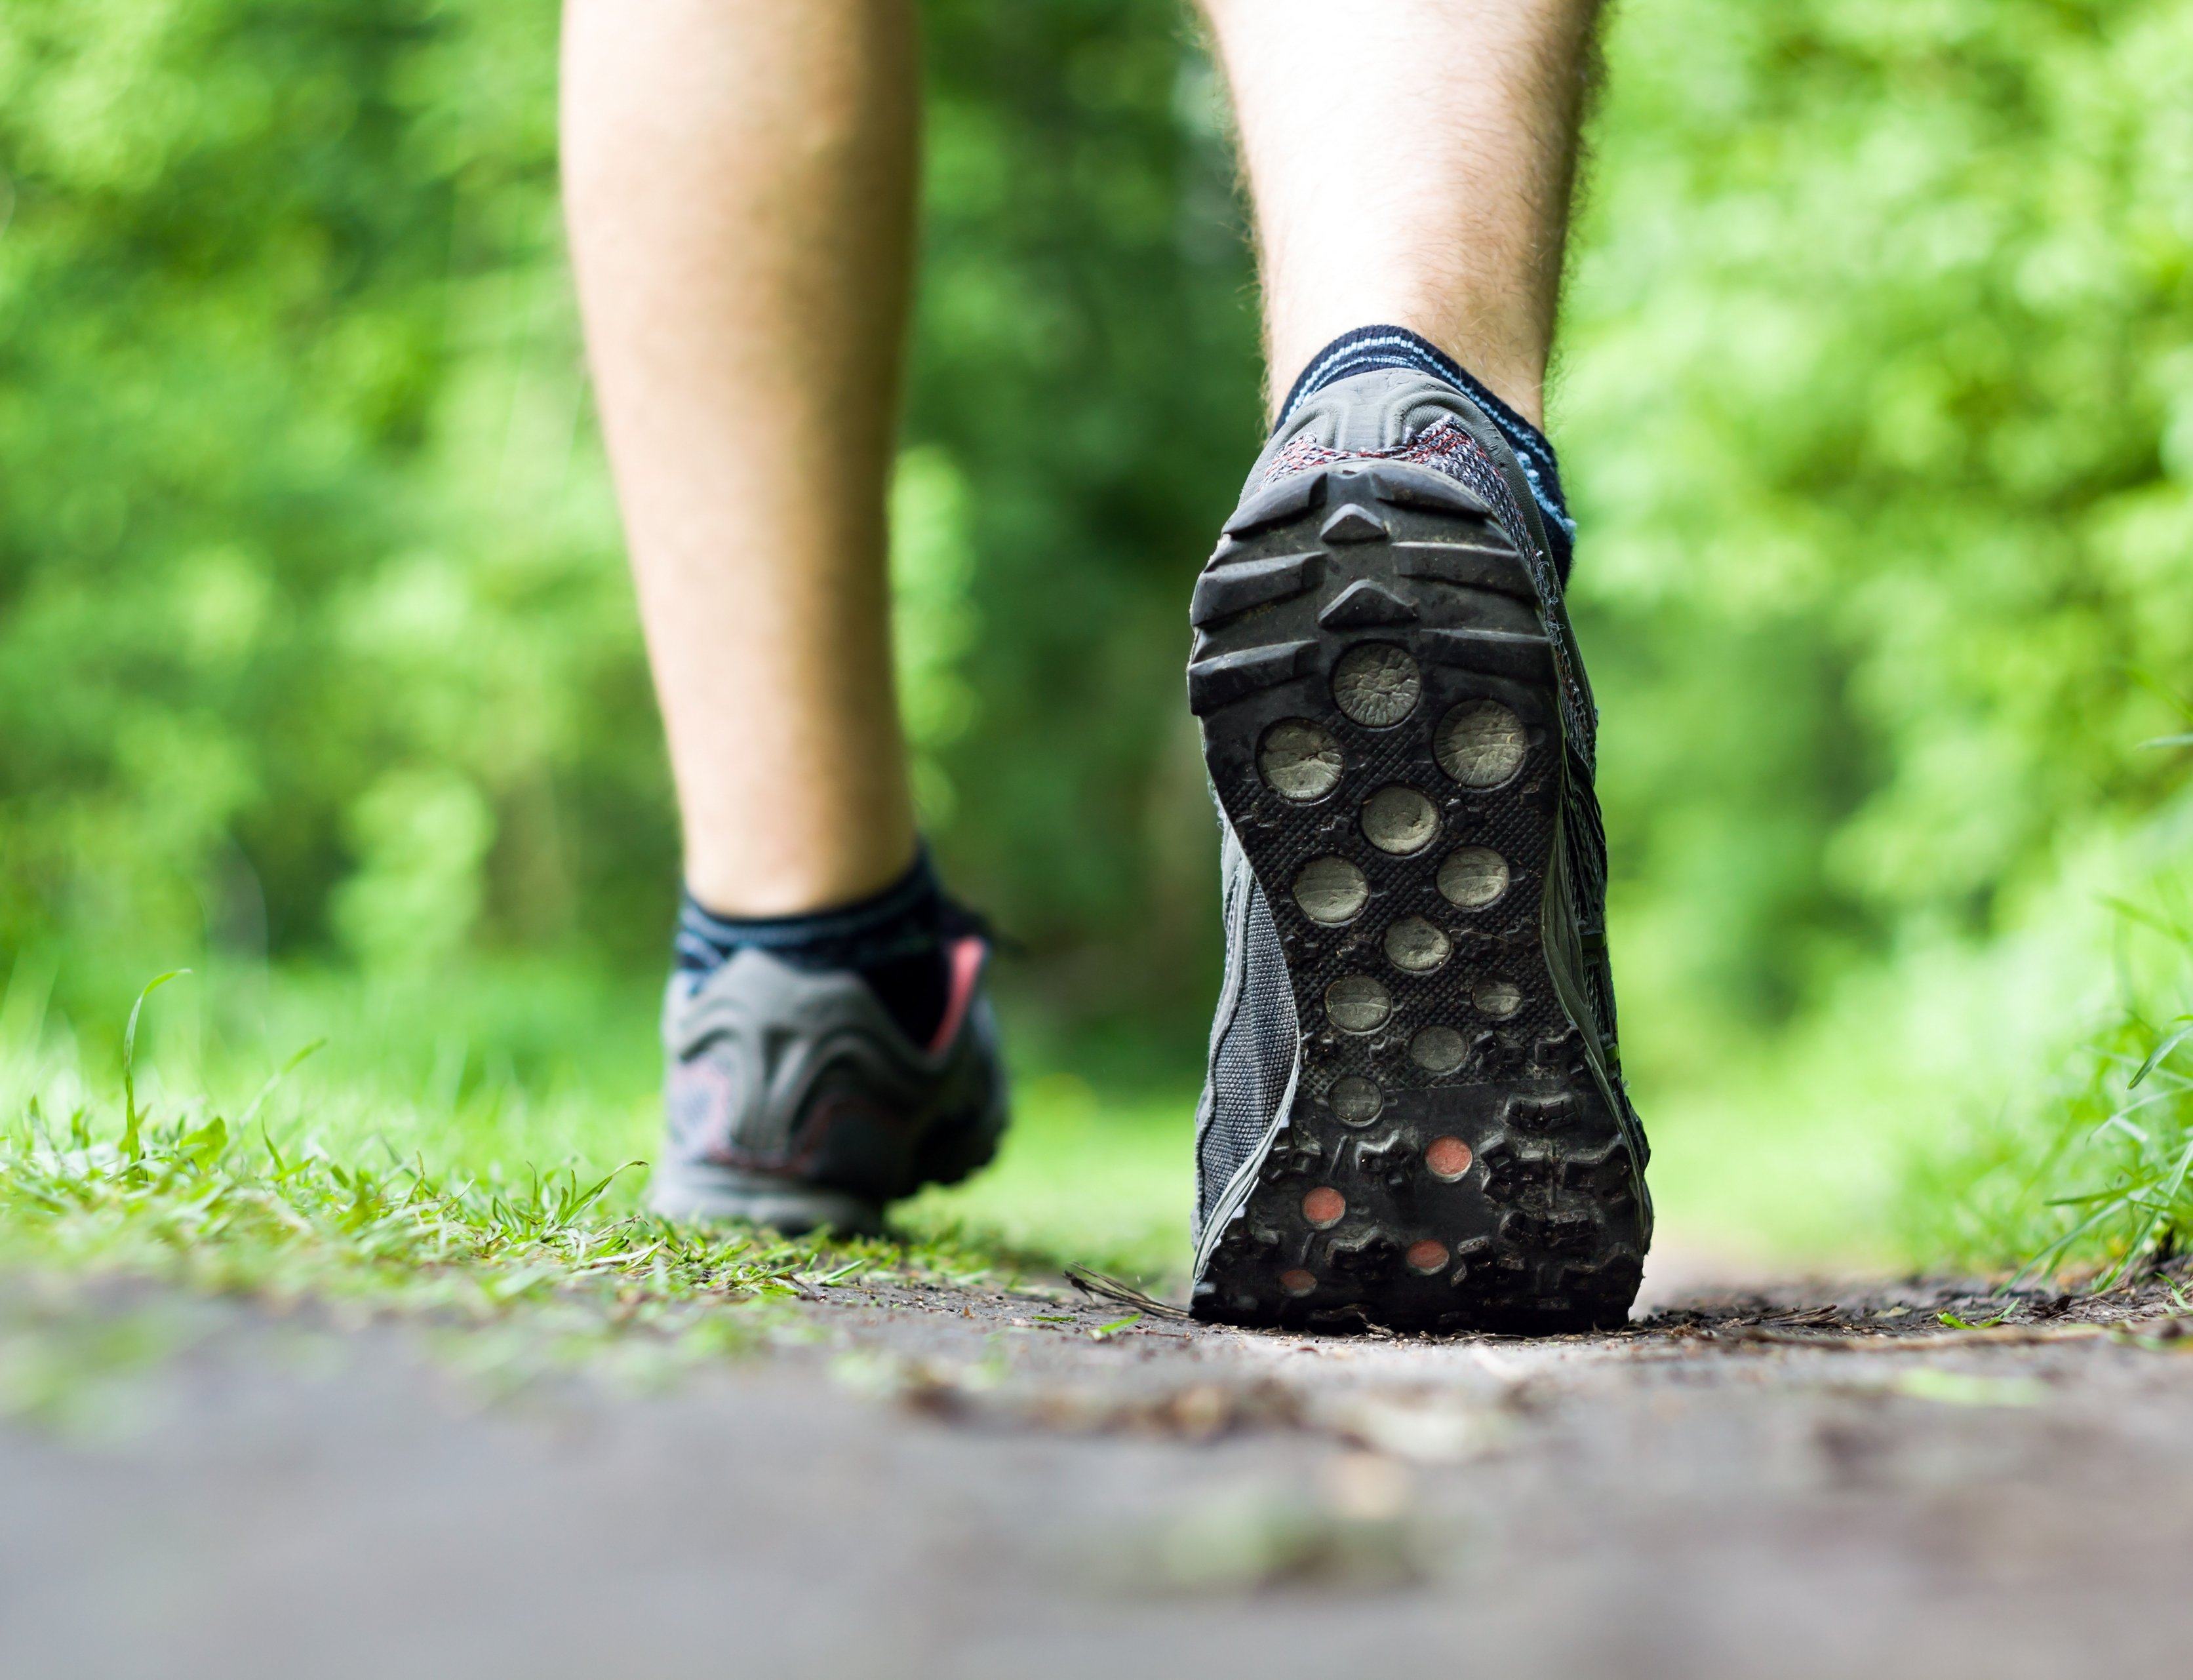 Man walking or running on trail in forest summer nature outdoors, sport shoes and exercising on footpath while hiking on delmarva